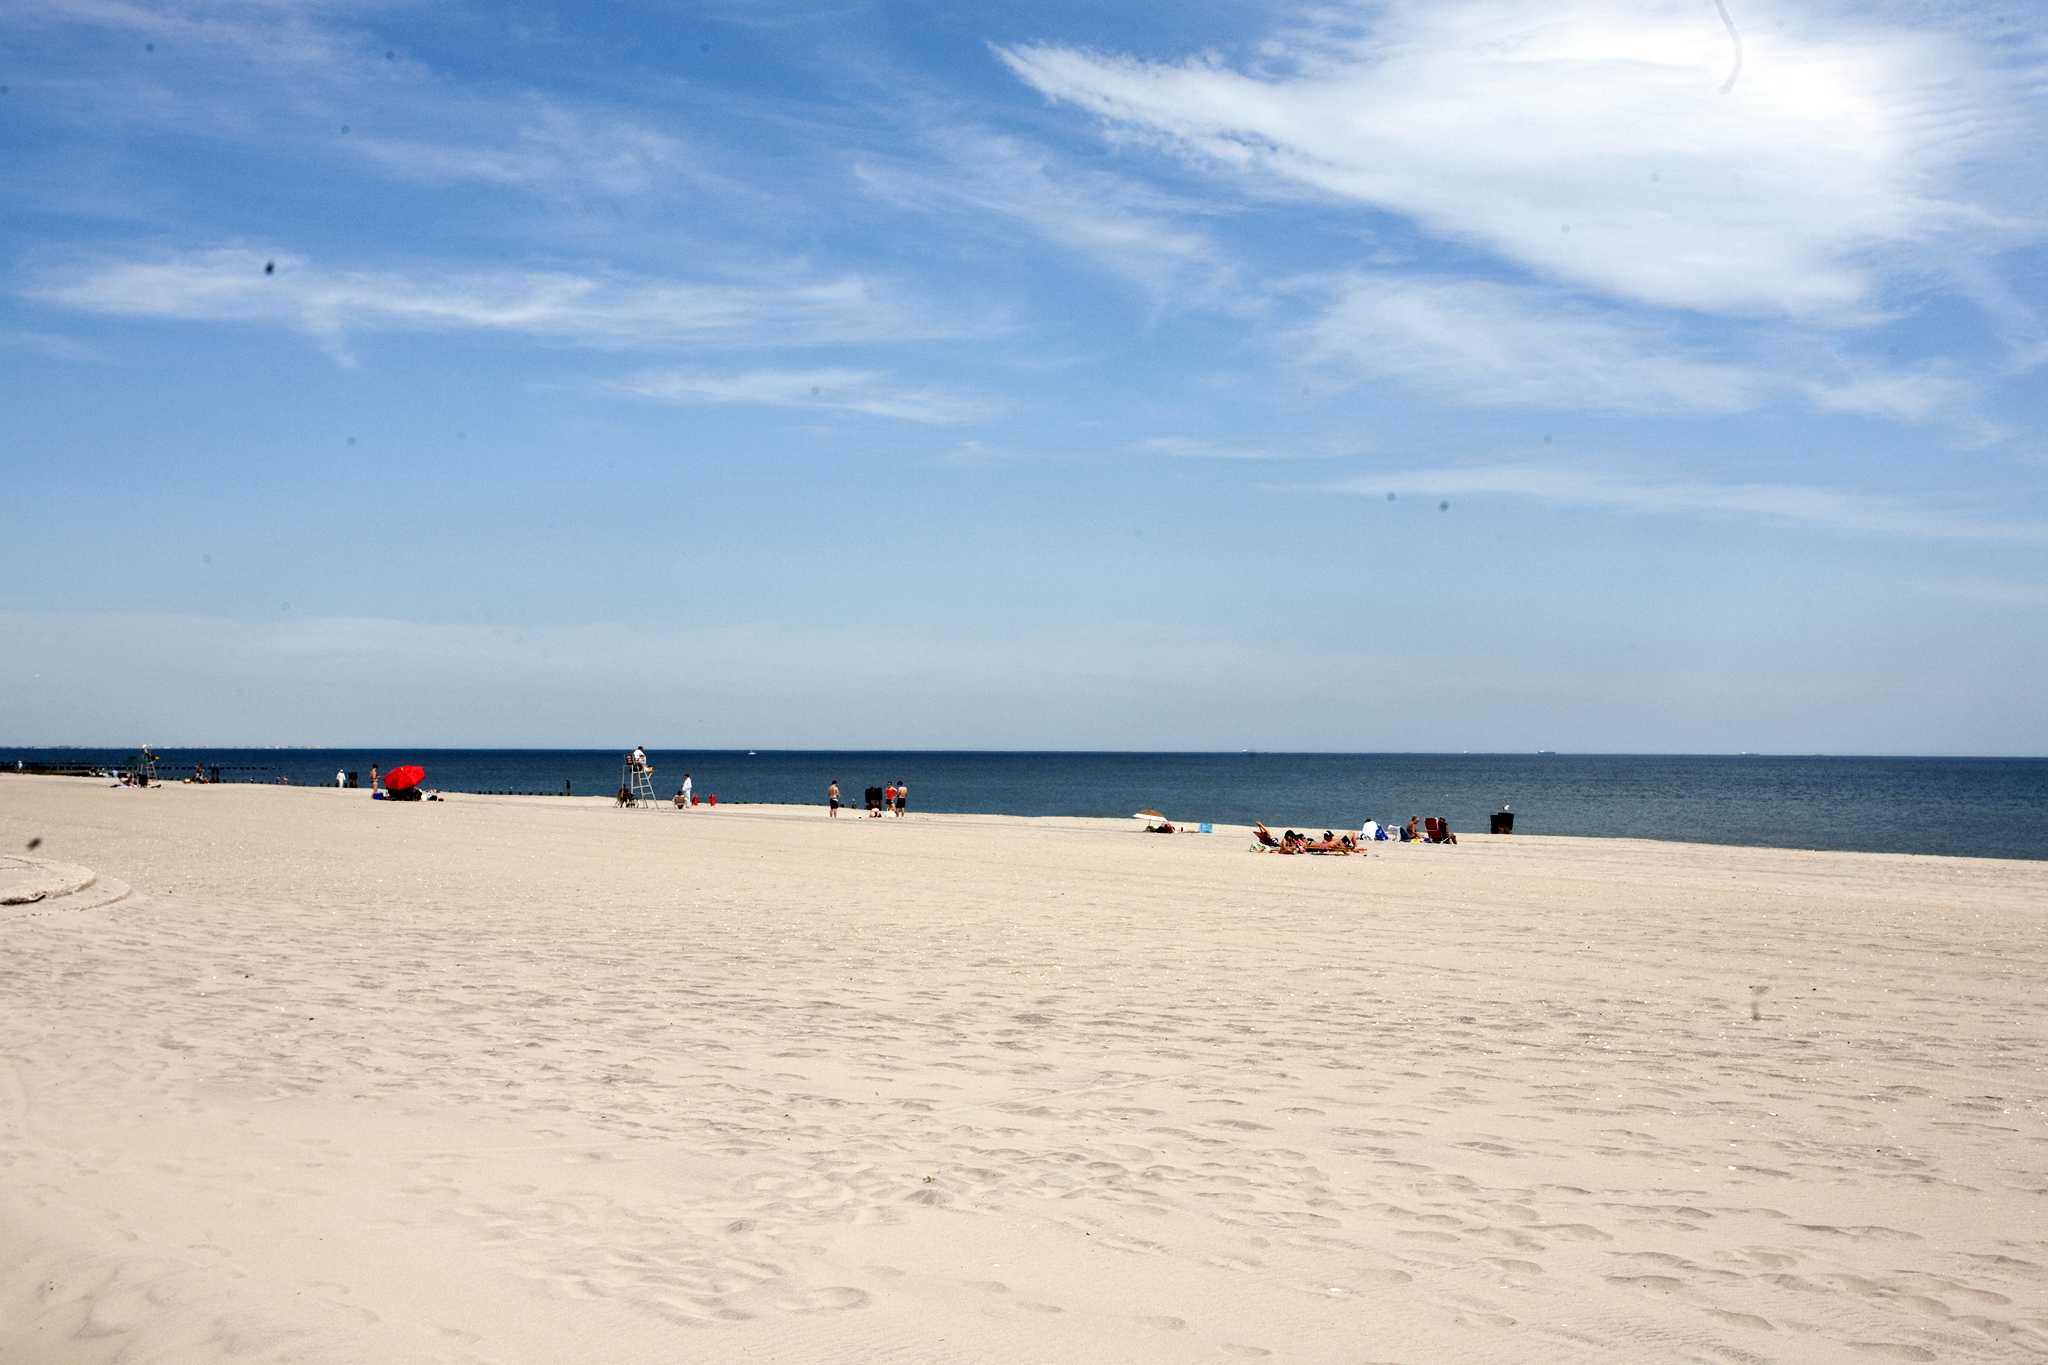 The NYC beach-vacation staycation